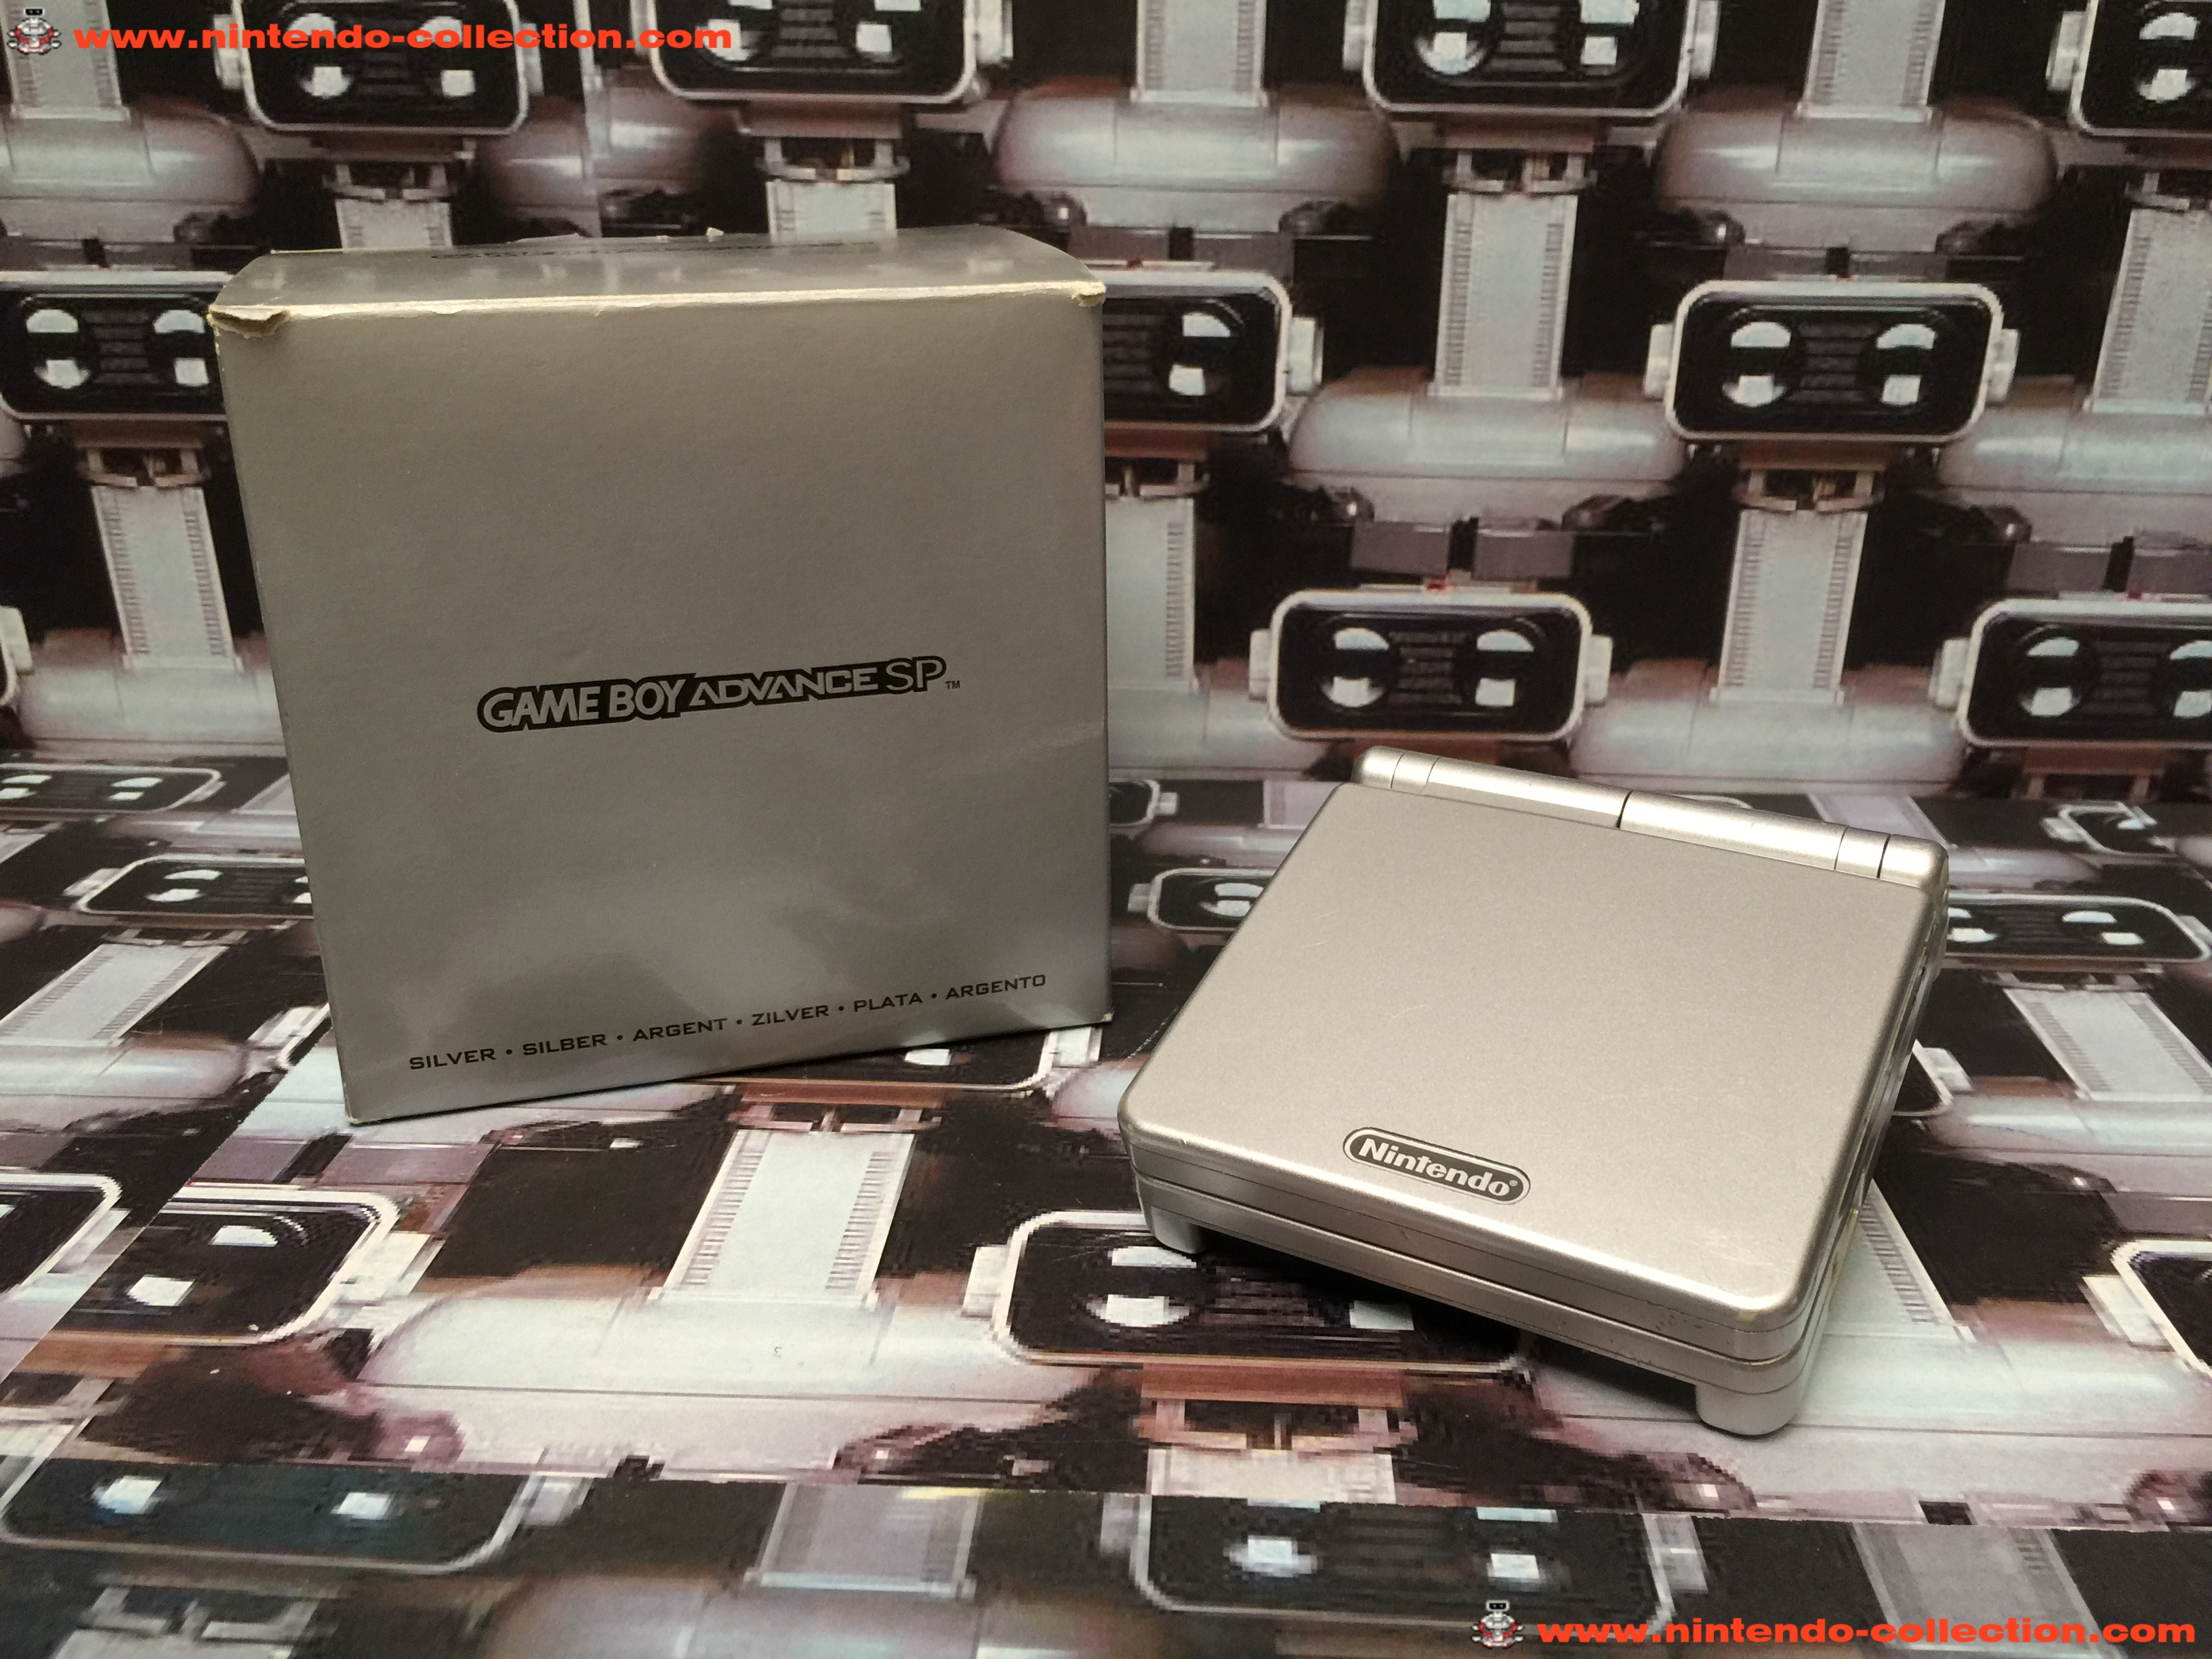 www.nintendo-collection.com - Gameboy Advance GBA SP Silver Argent Edition europeenne european - 01